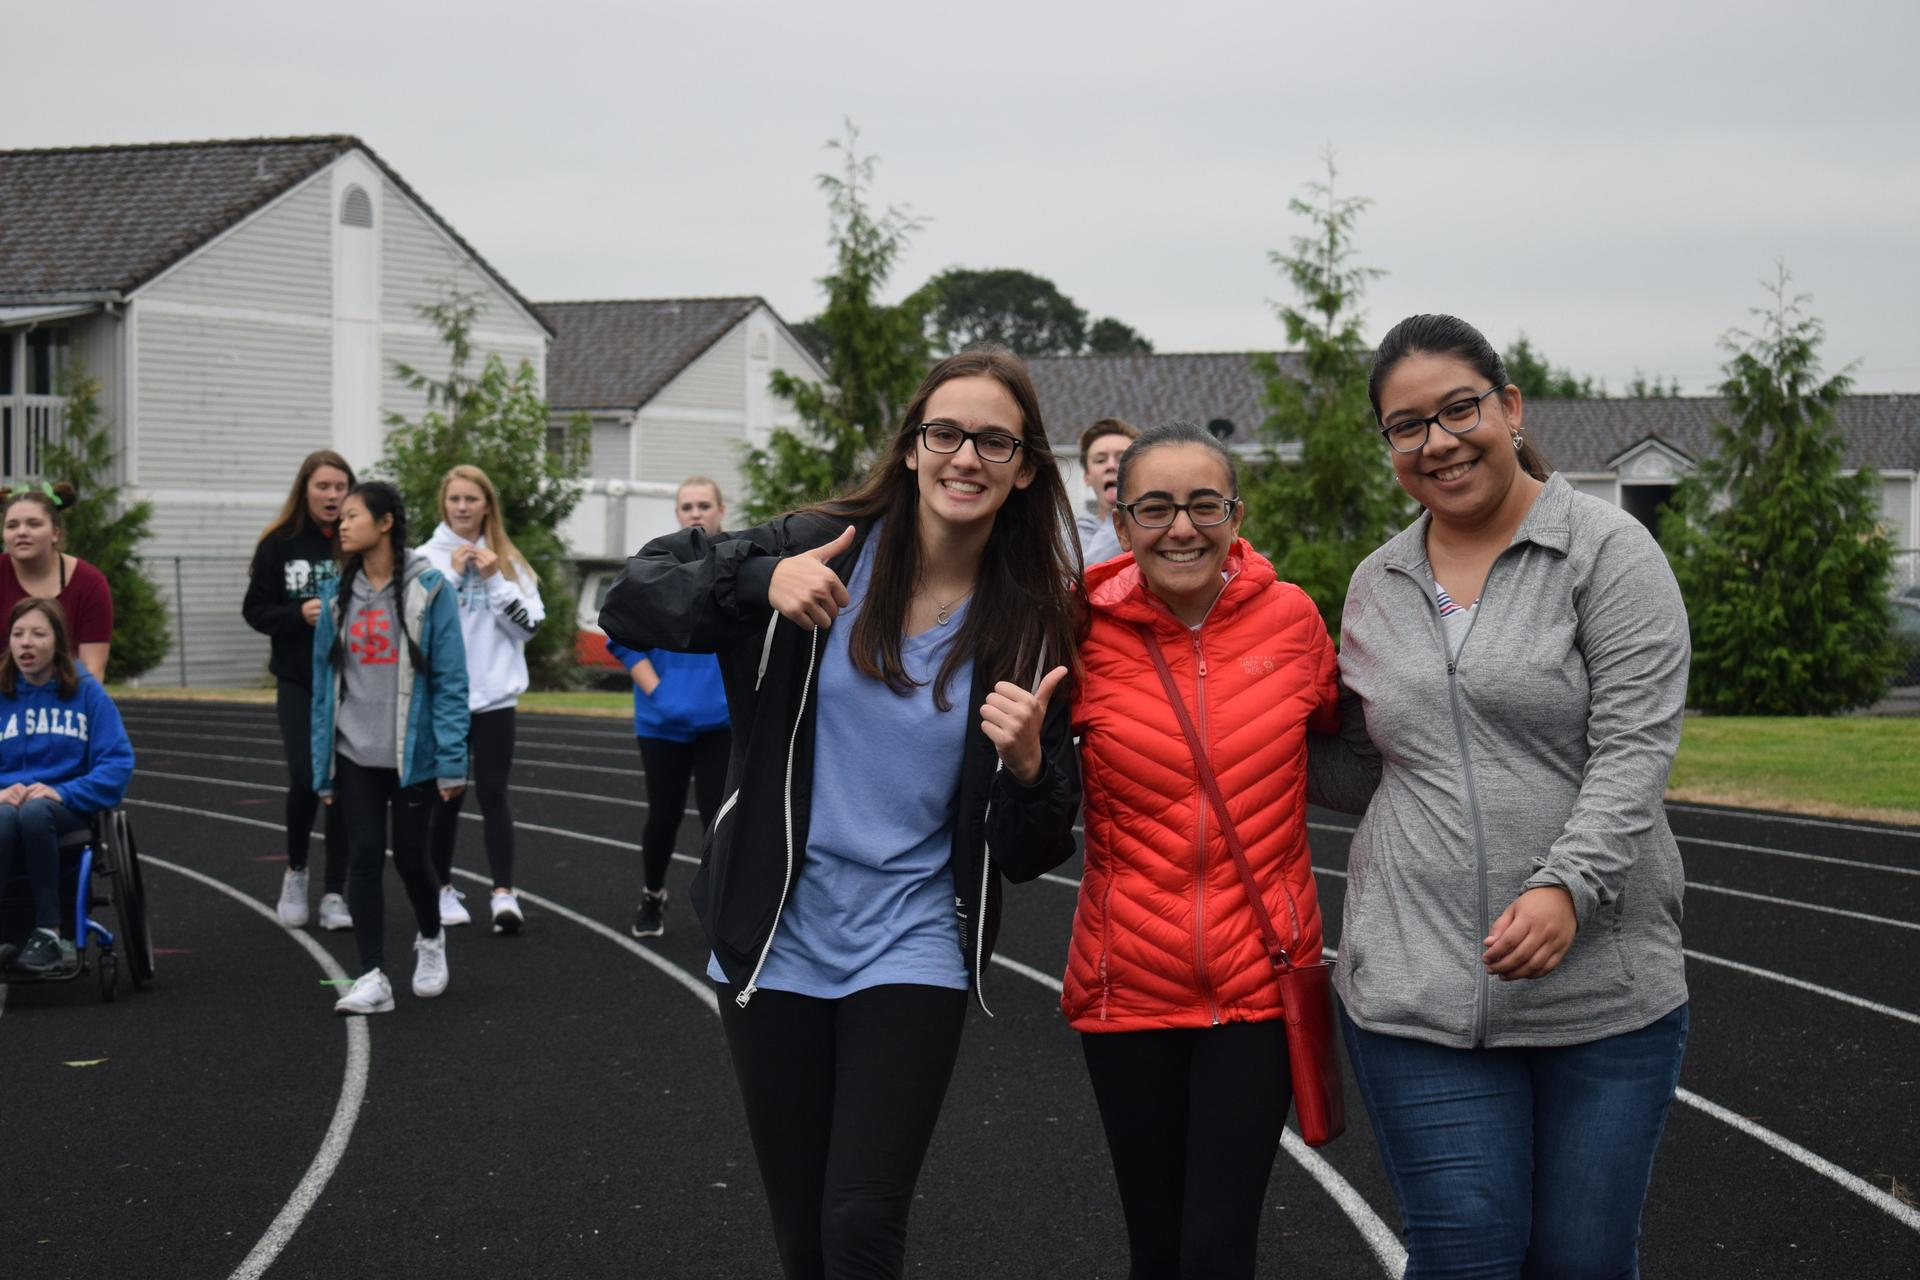 students smile during walk